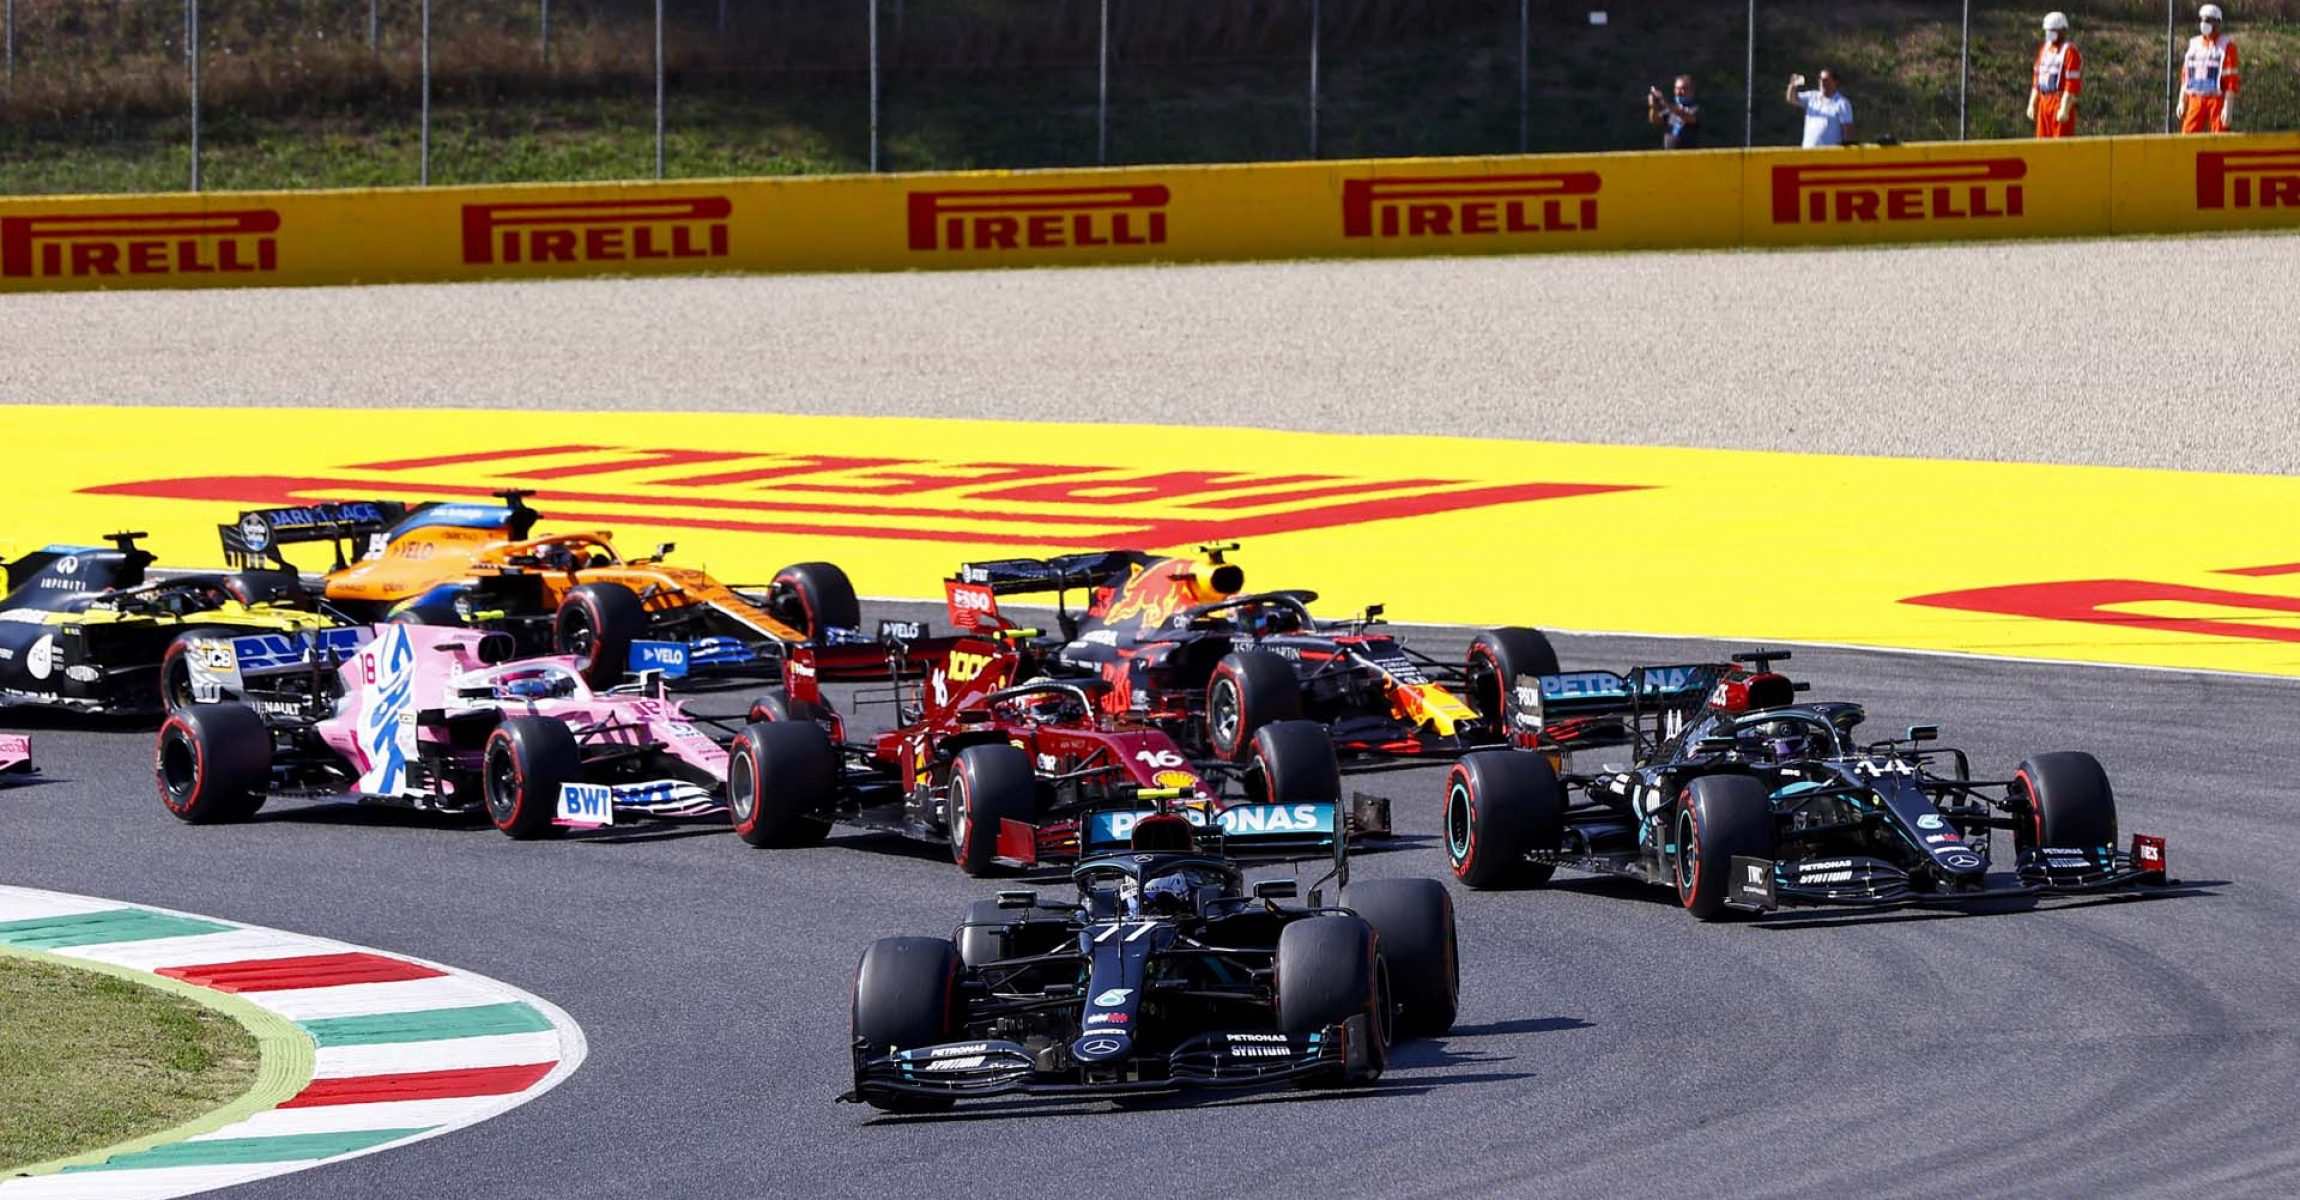 2020 Tuscan Grand Prix, Sunday - LAT Images start Valtteri Bottas Mercedes